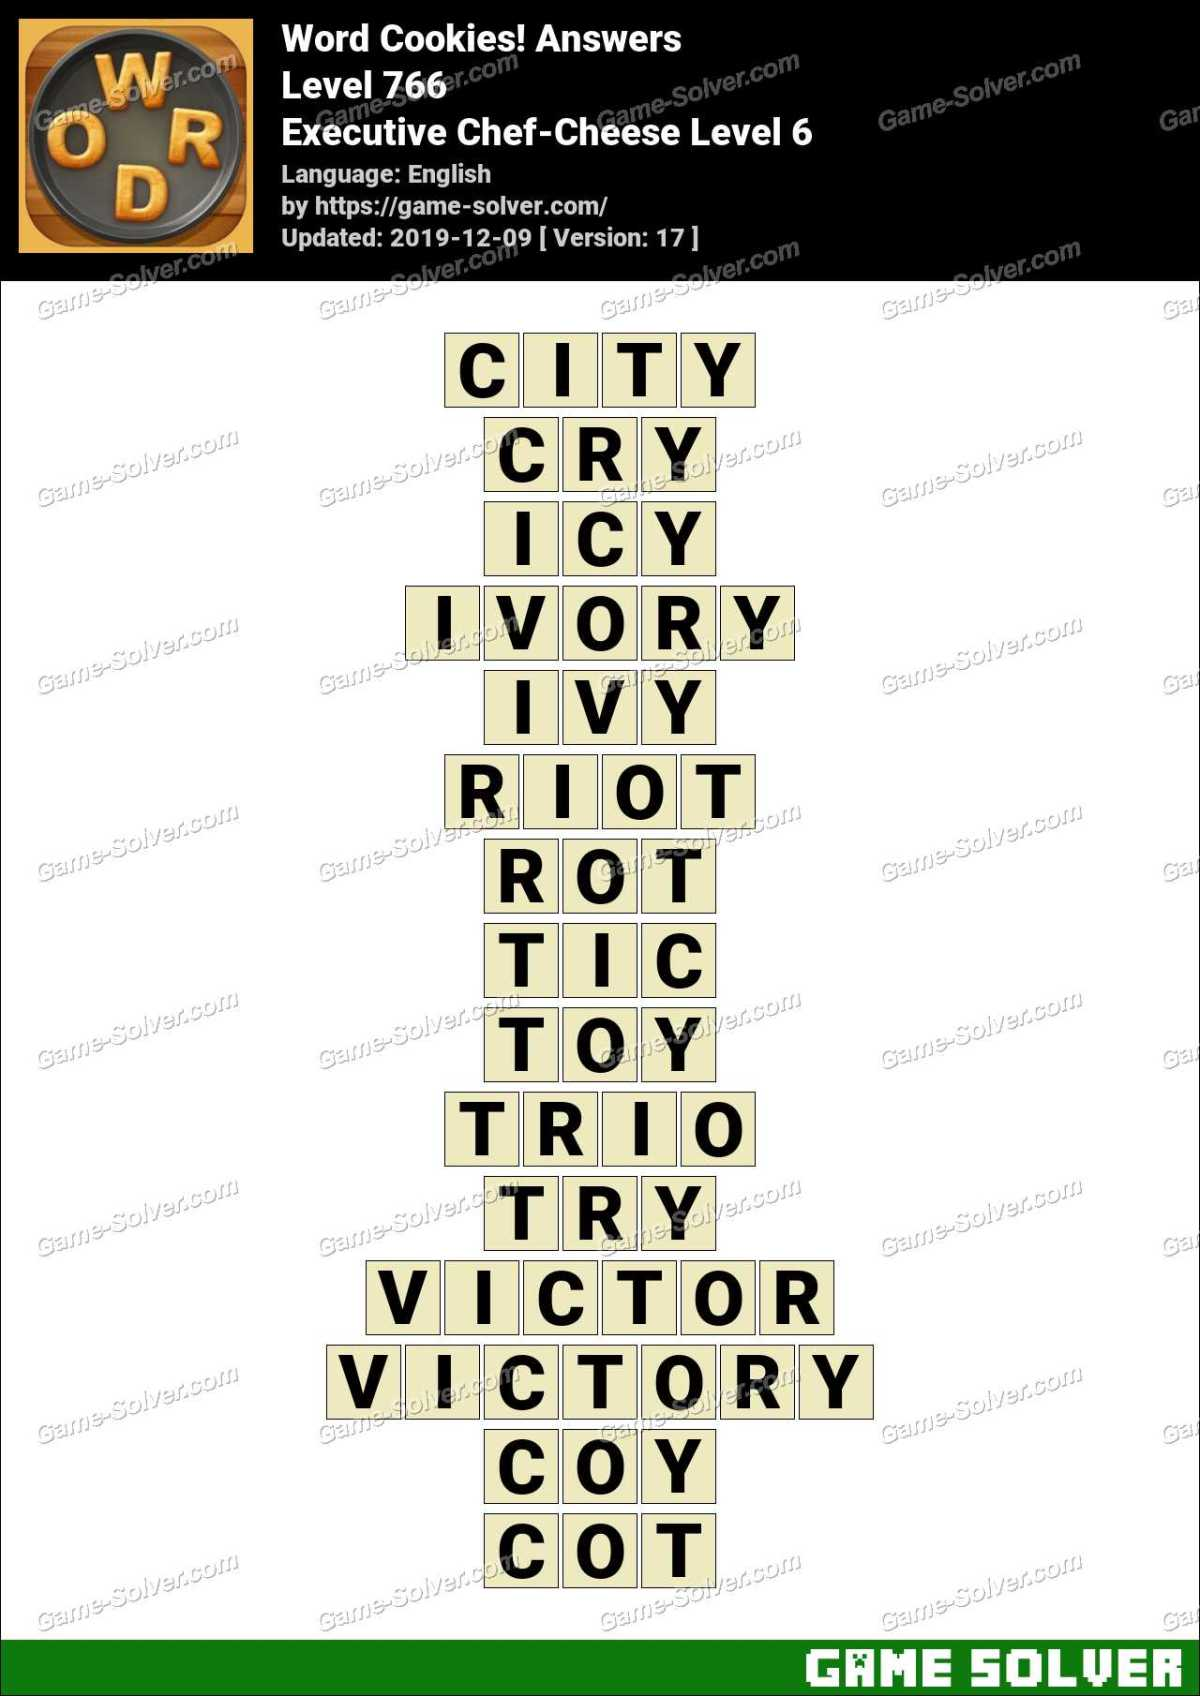 Word Cookies Executive Chef-Cheese Level 6 Answers